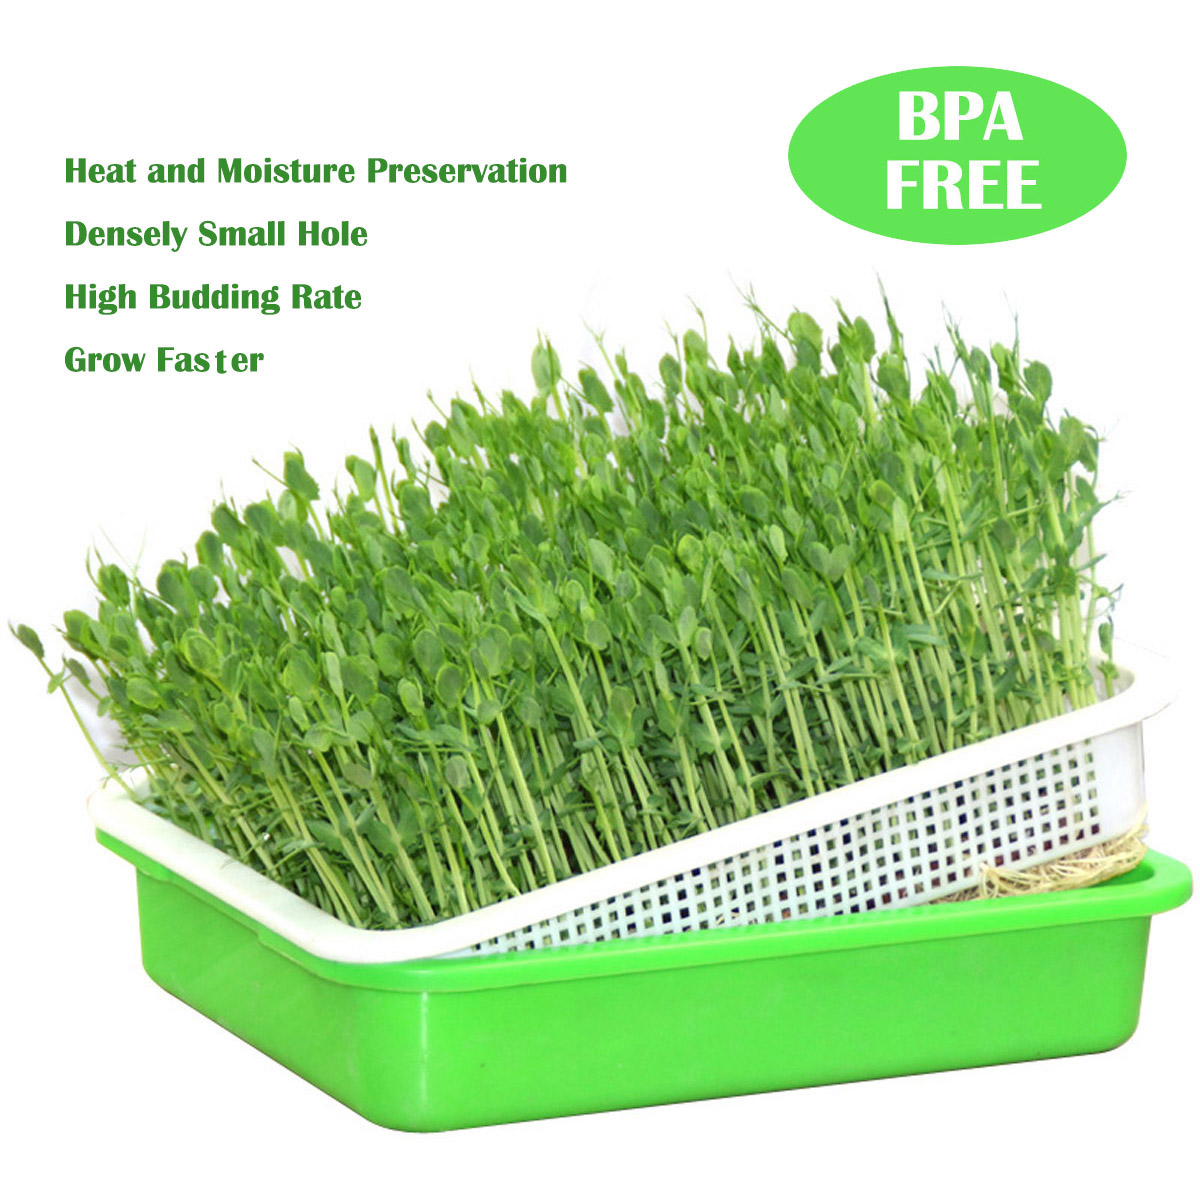 Tribest Sproutman/'s Soil-Free Wheatgrass Grower Sprouter Tray System